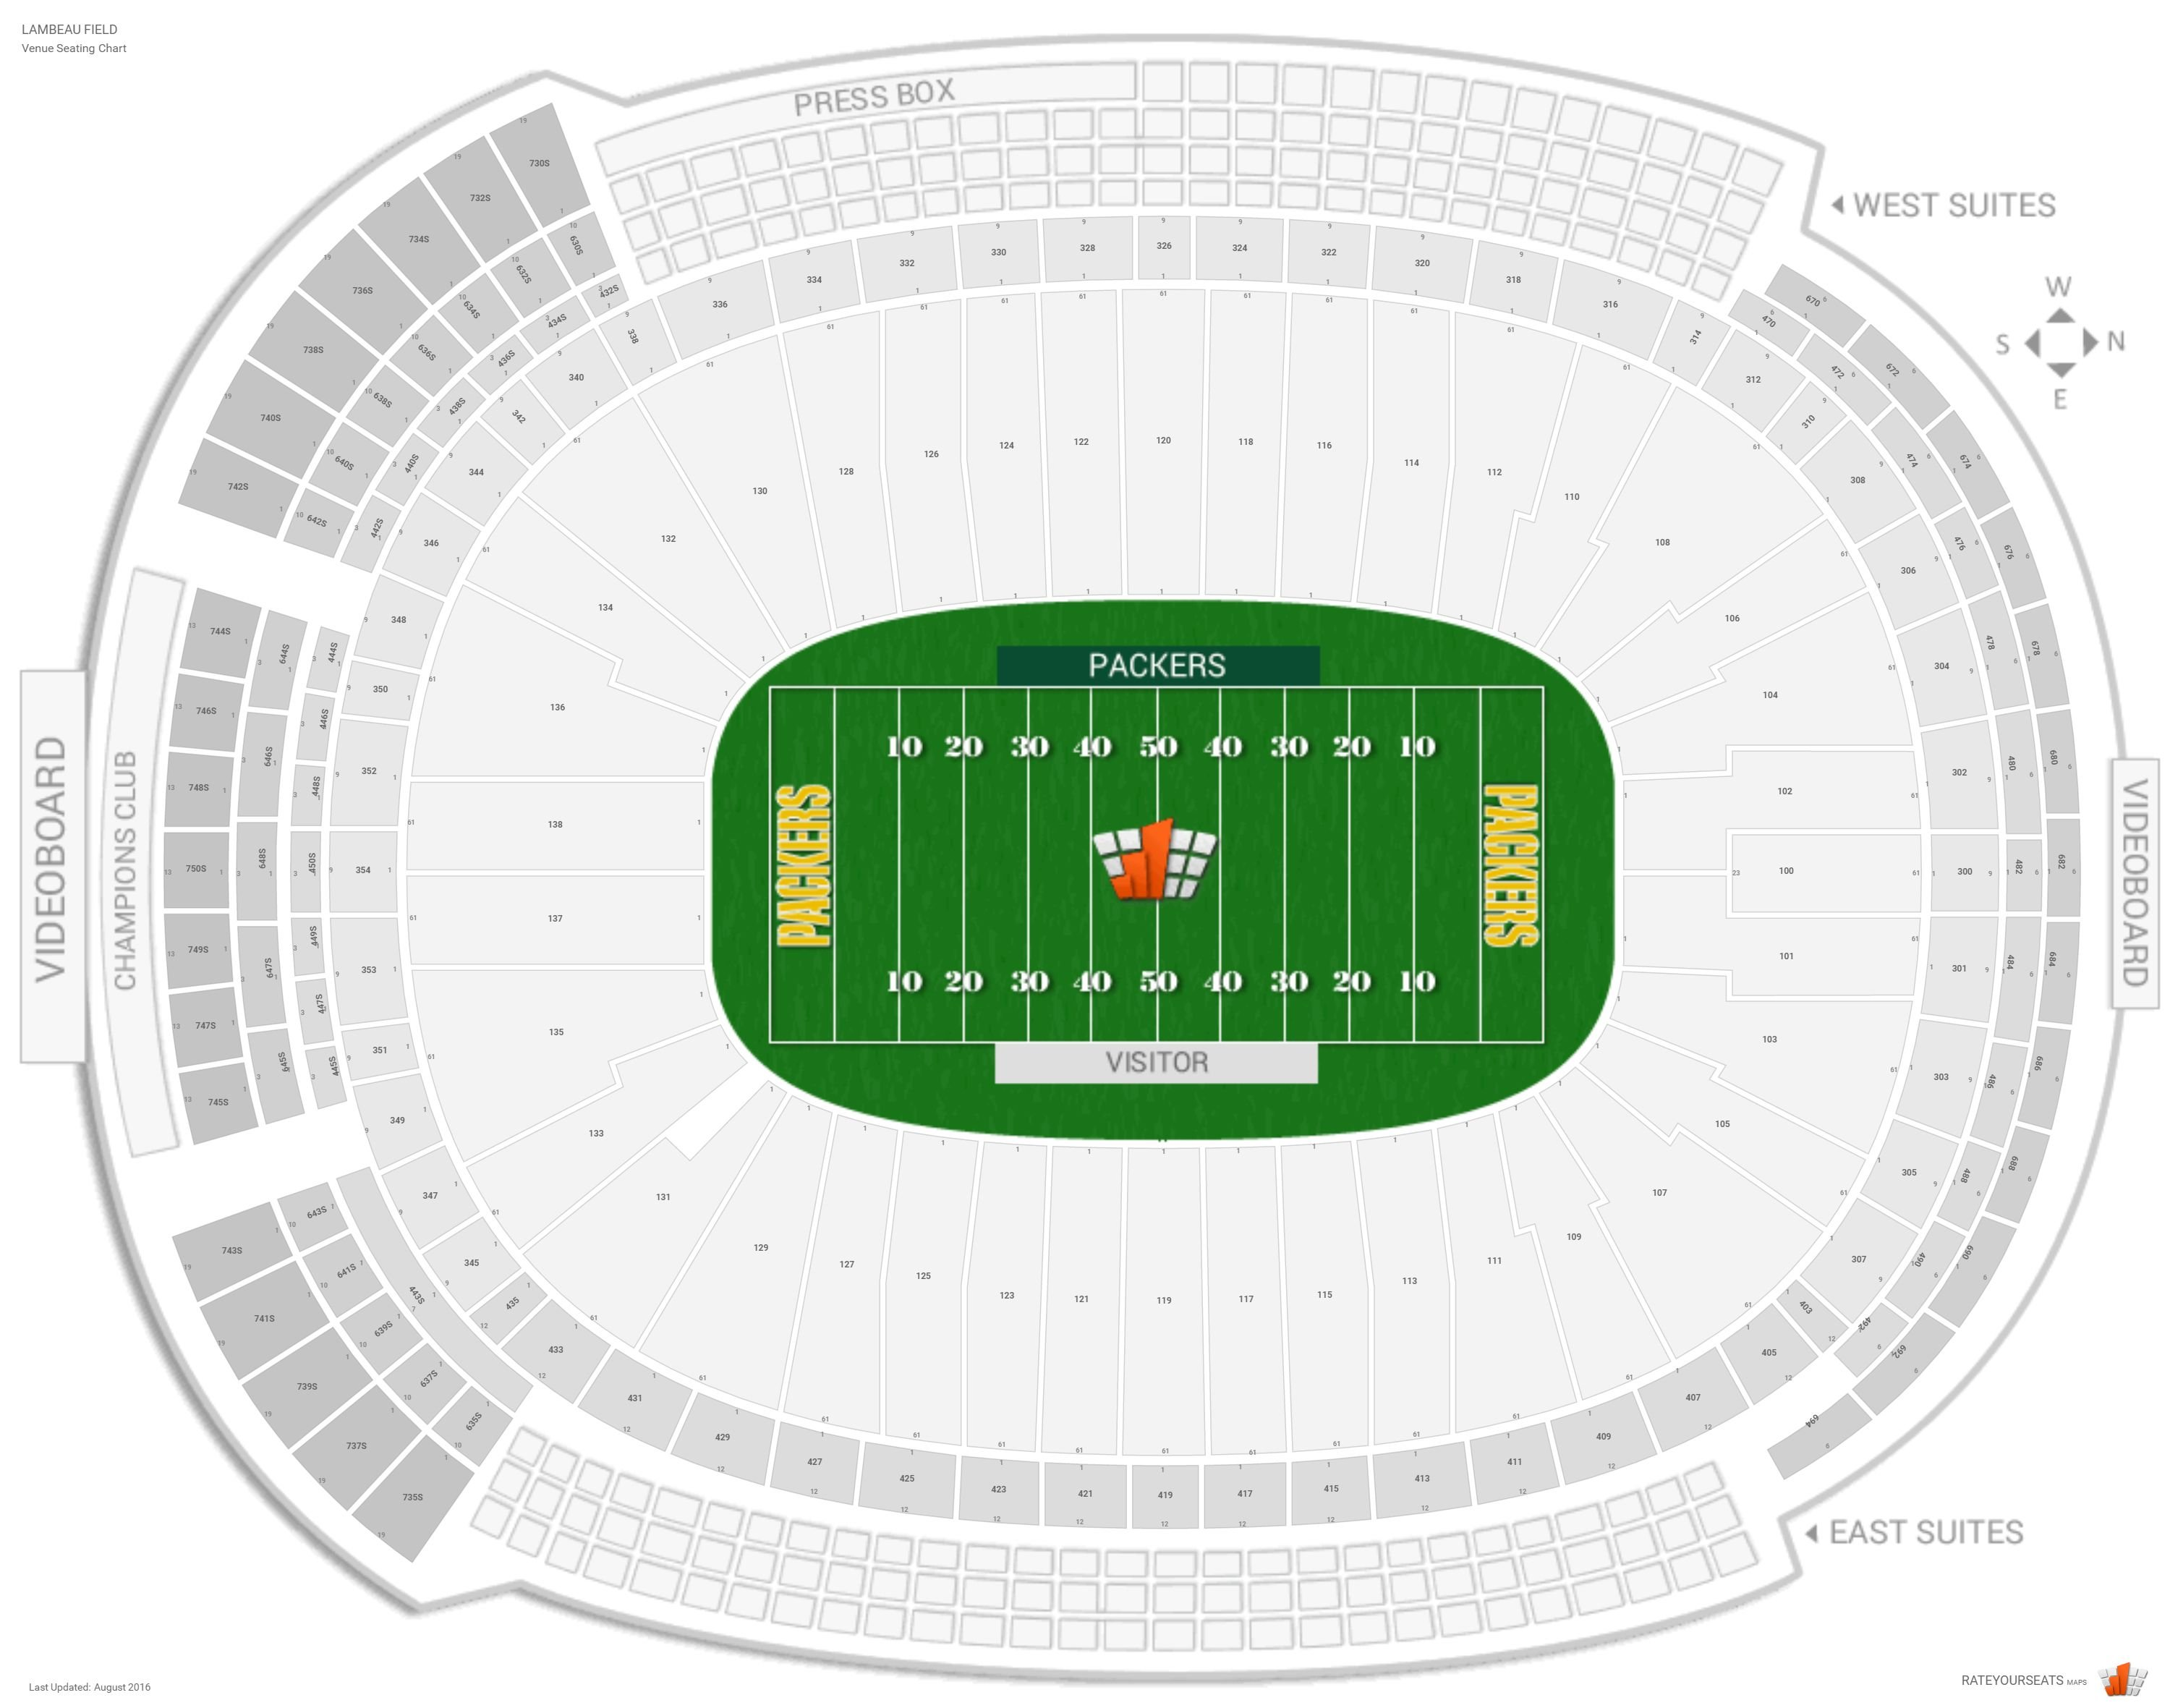 Lambeau Field Seating Map Green Bay Packers Seating Guide   Lambeau Field   RateYourSeats.com